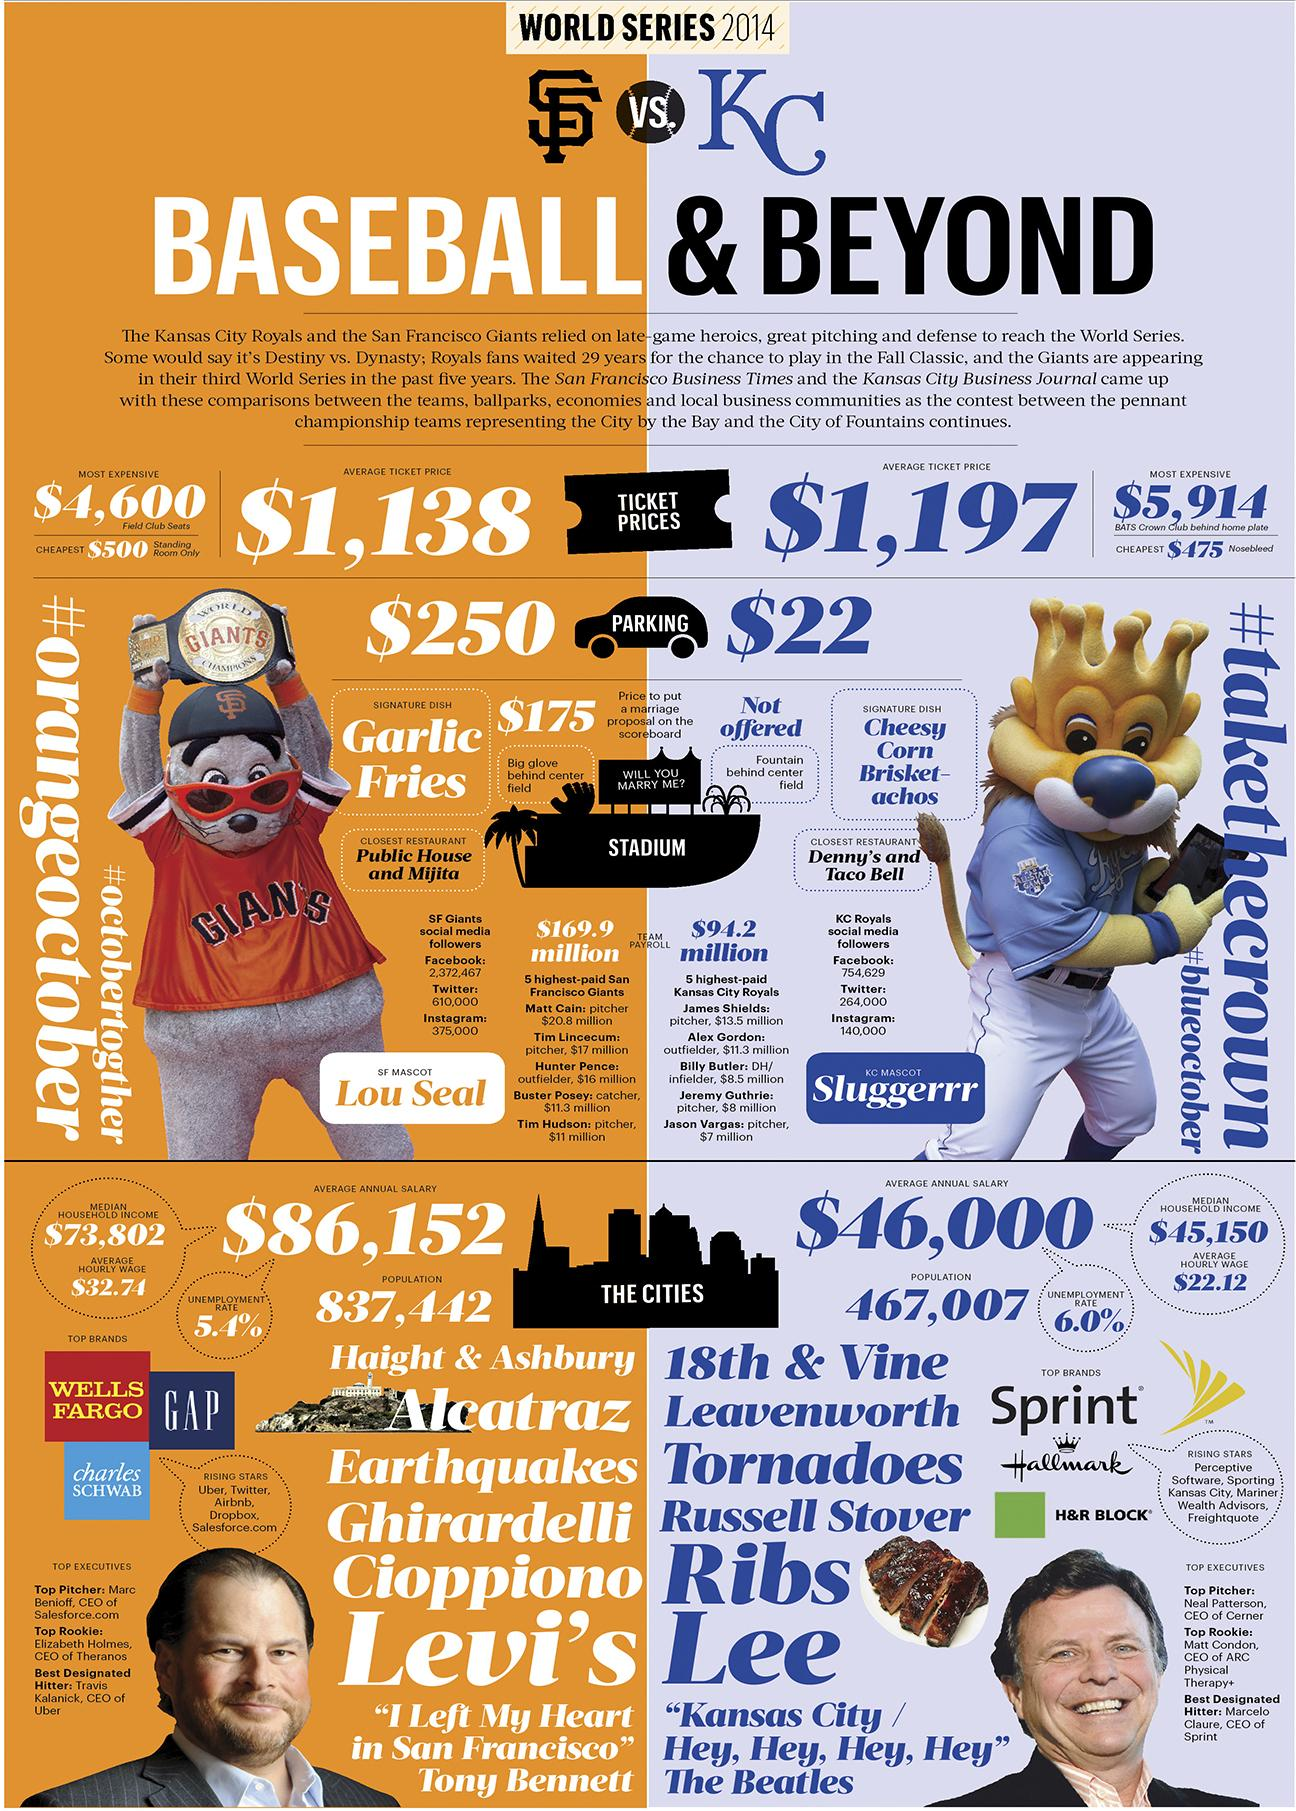 worldseriesinfographic-bizjournals